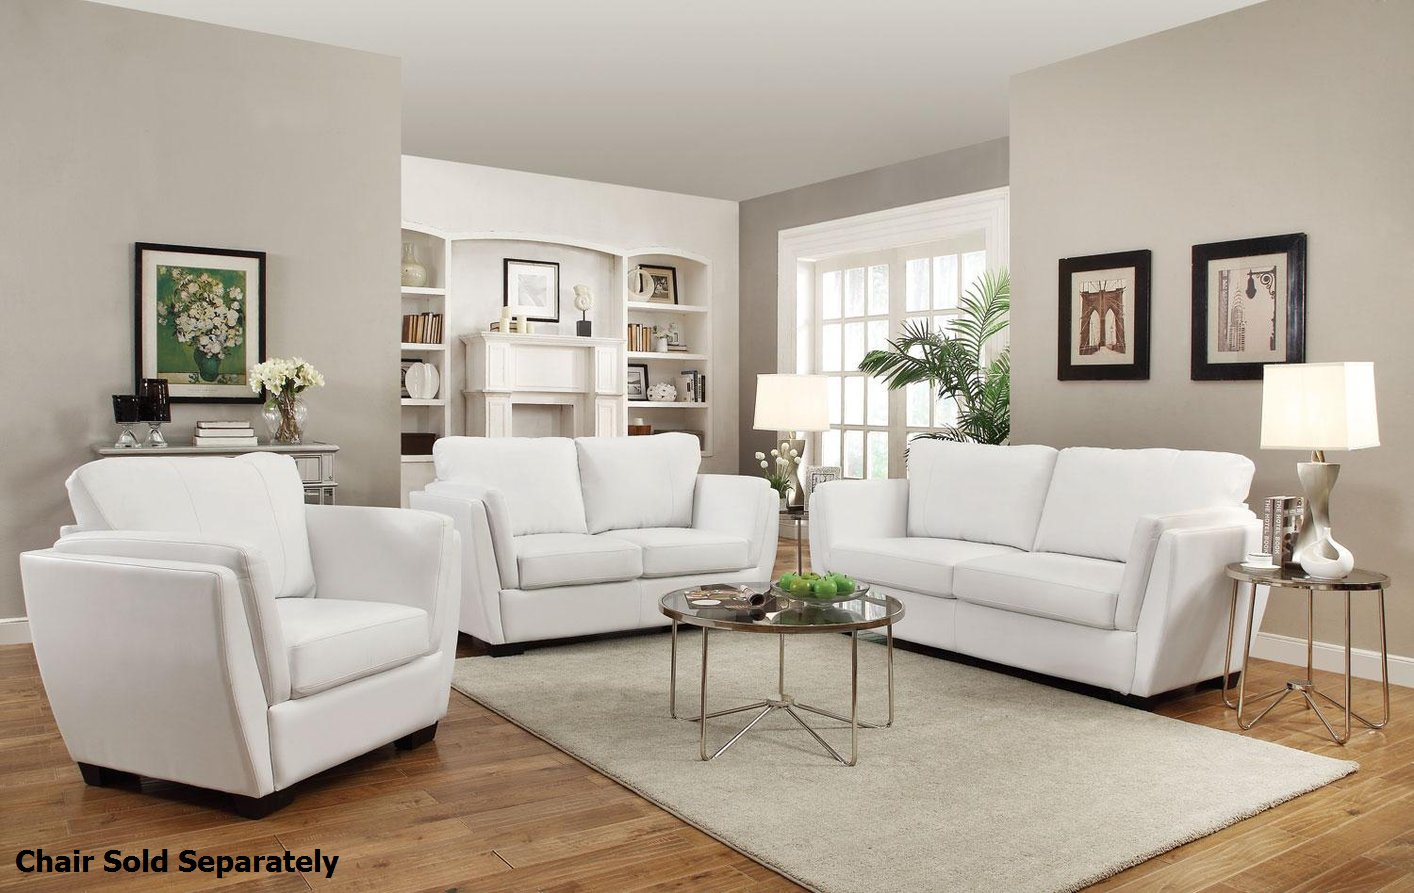 full large couch beige sofa size furniture bed chair tufted leather of convertible color white gray